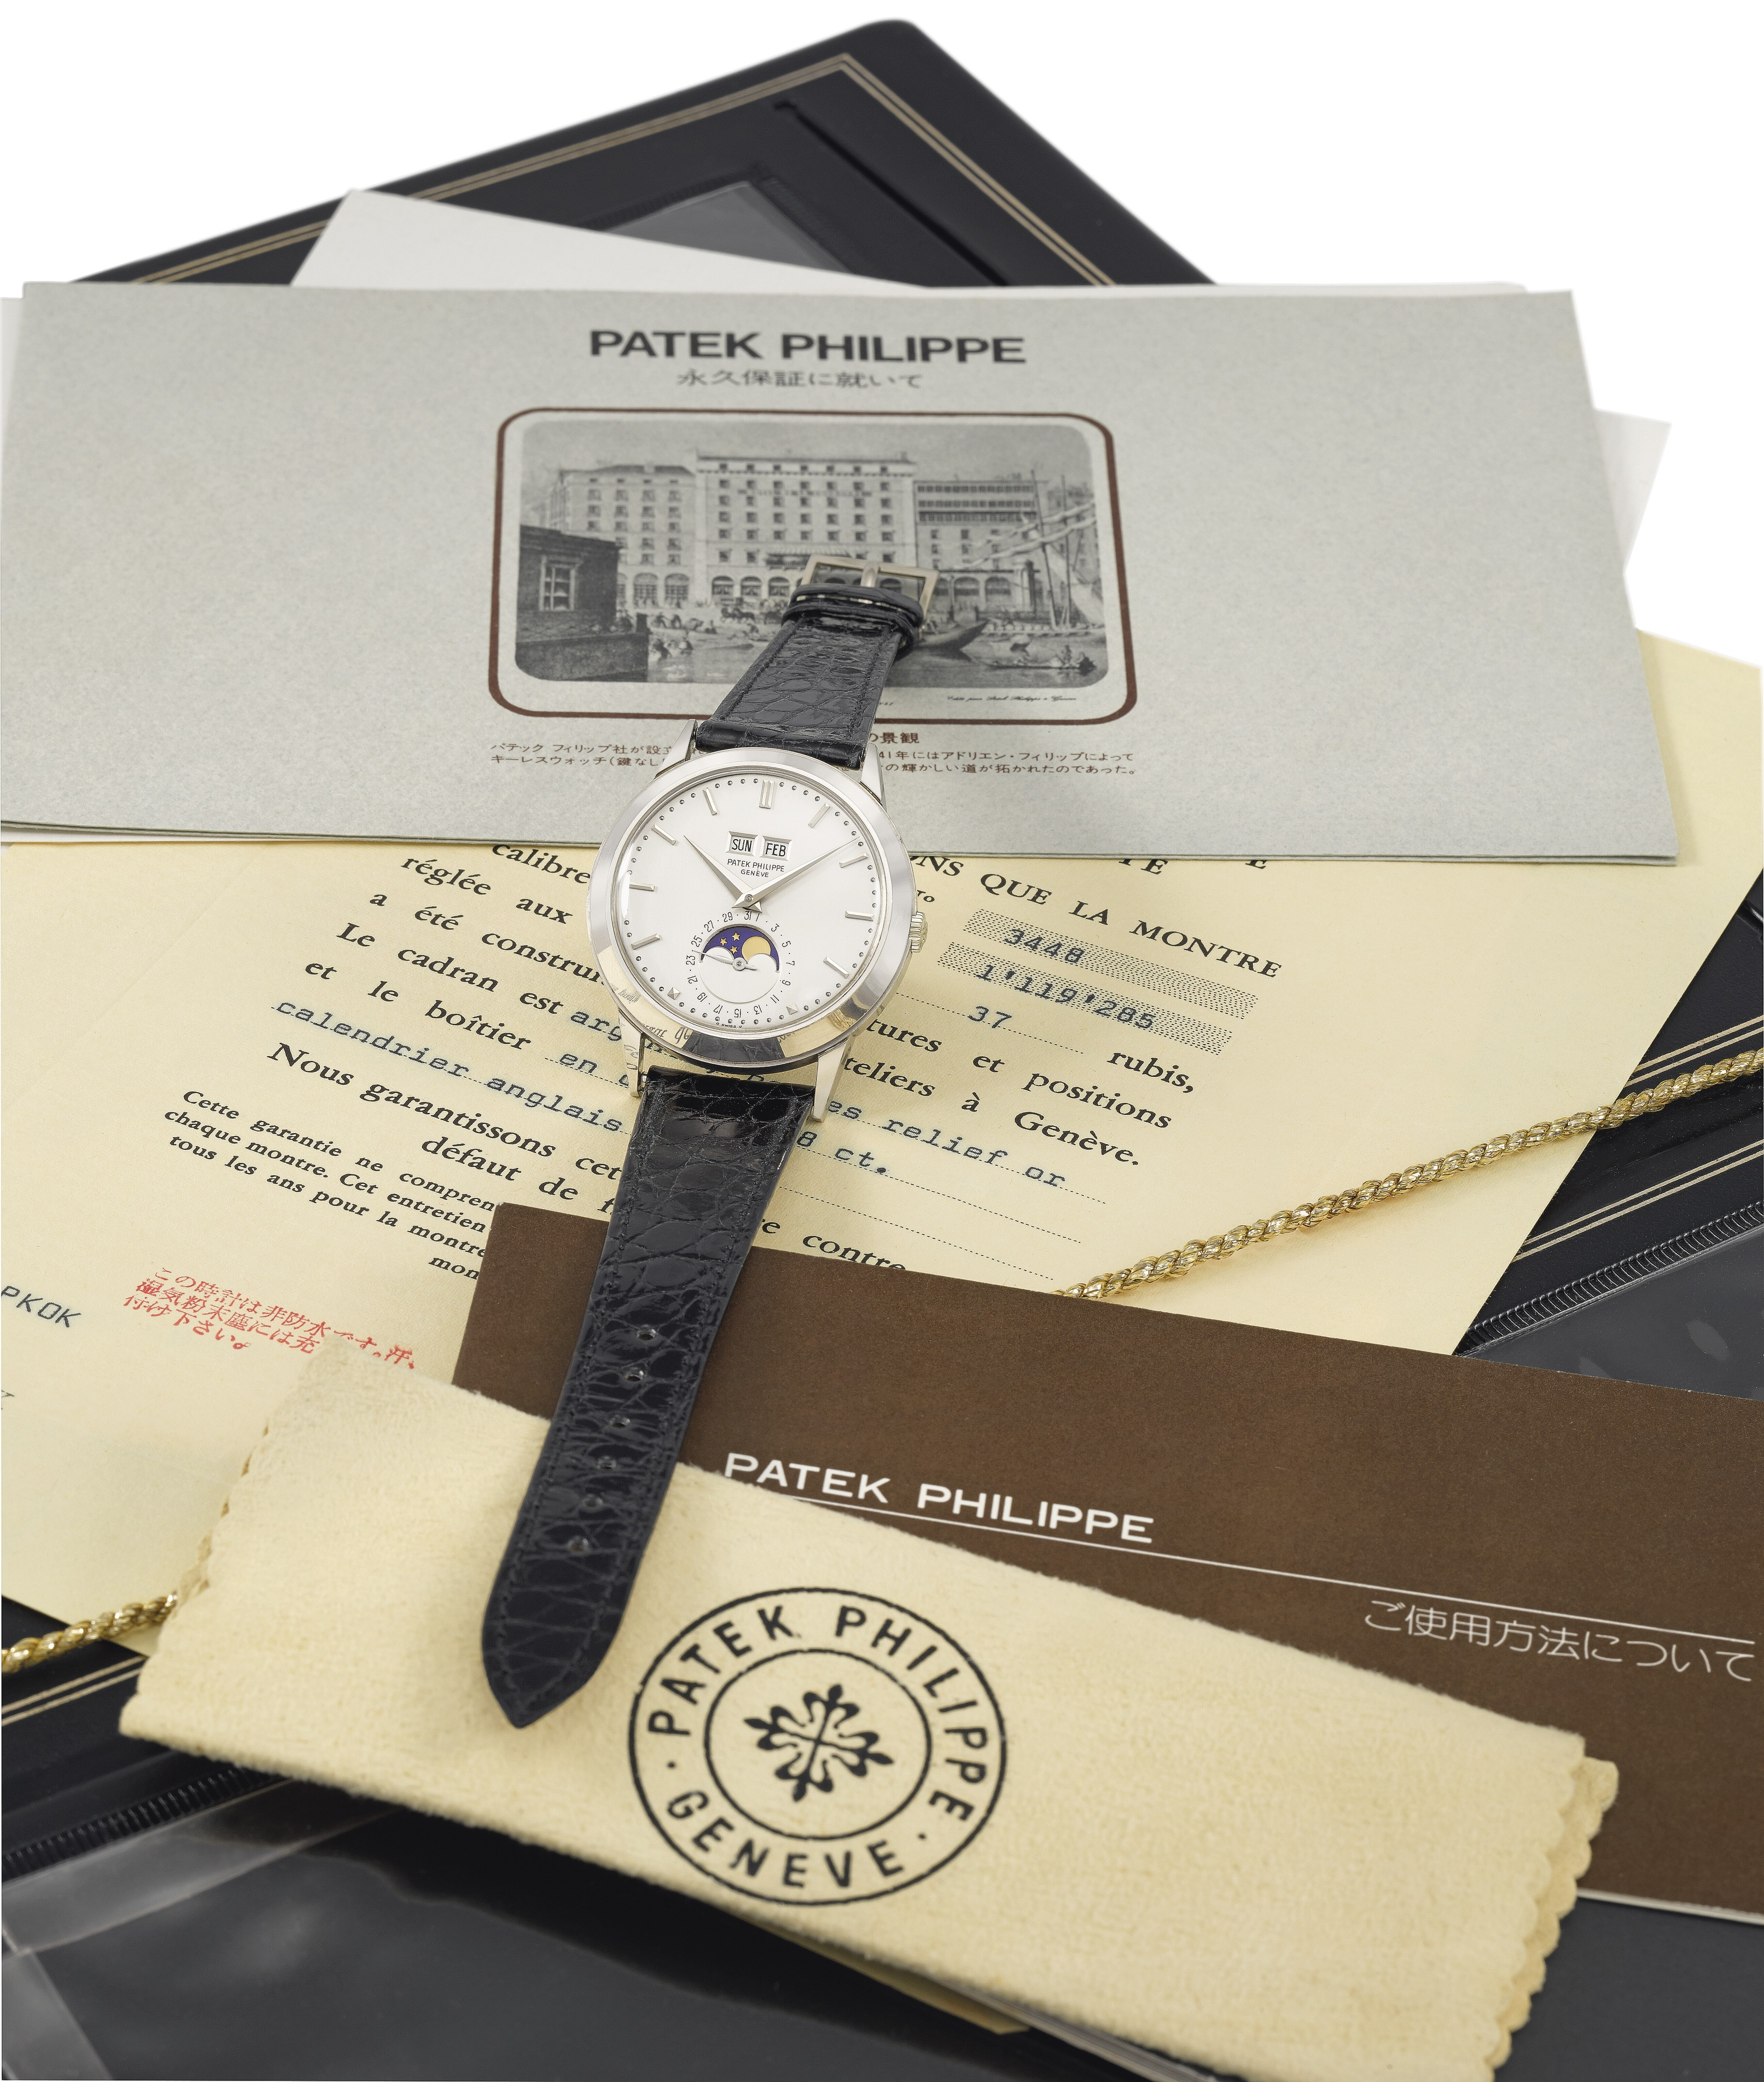 Patek Philippe Ref 3498 on sale at Christie's on 13th May